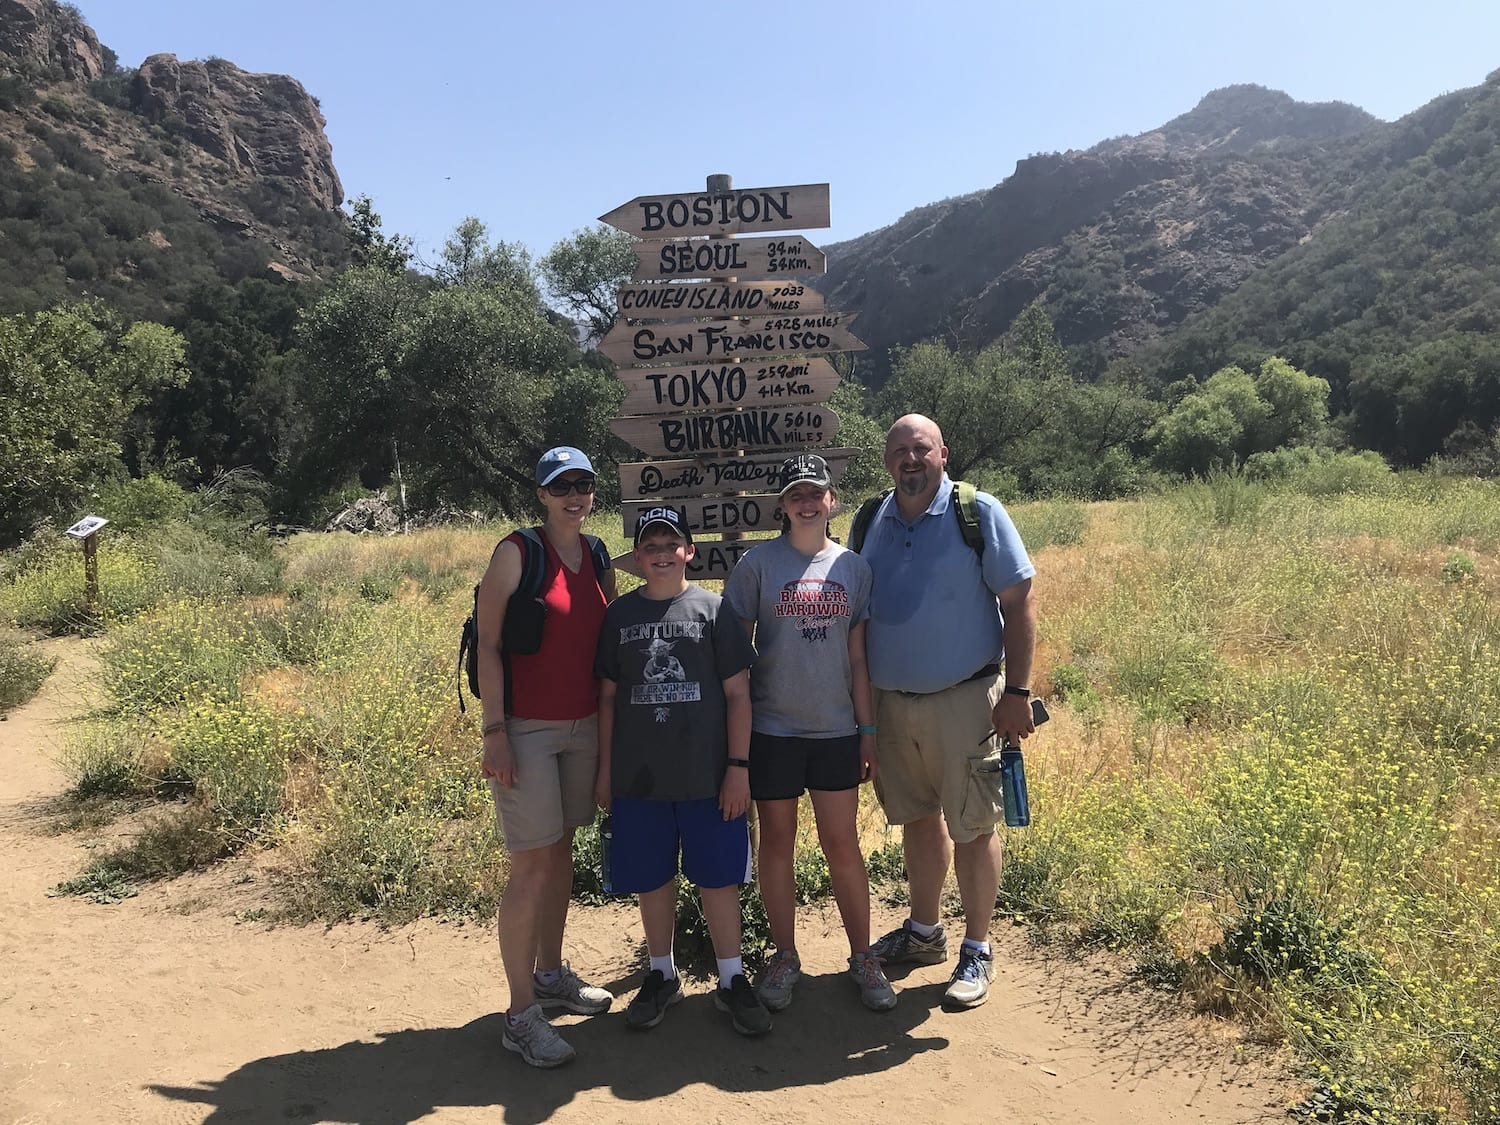 Family picture at the M*A*S*H hike